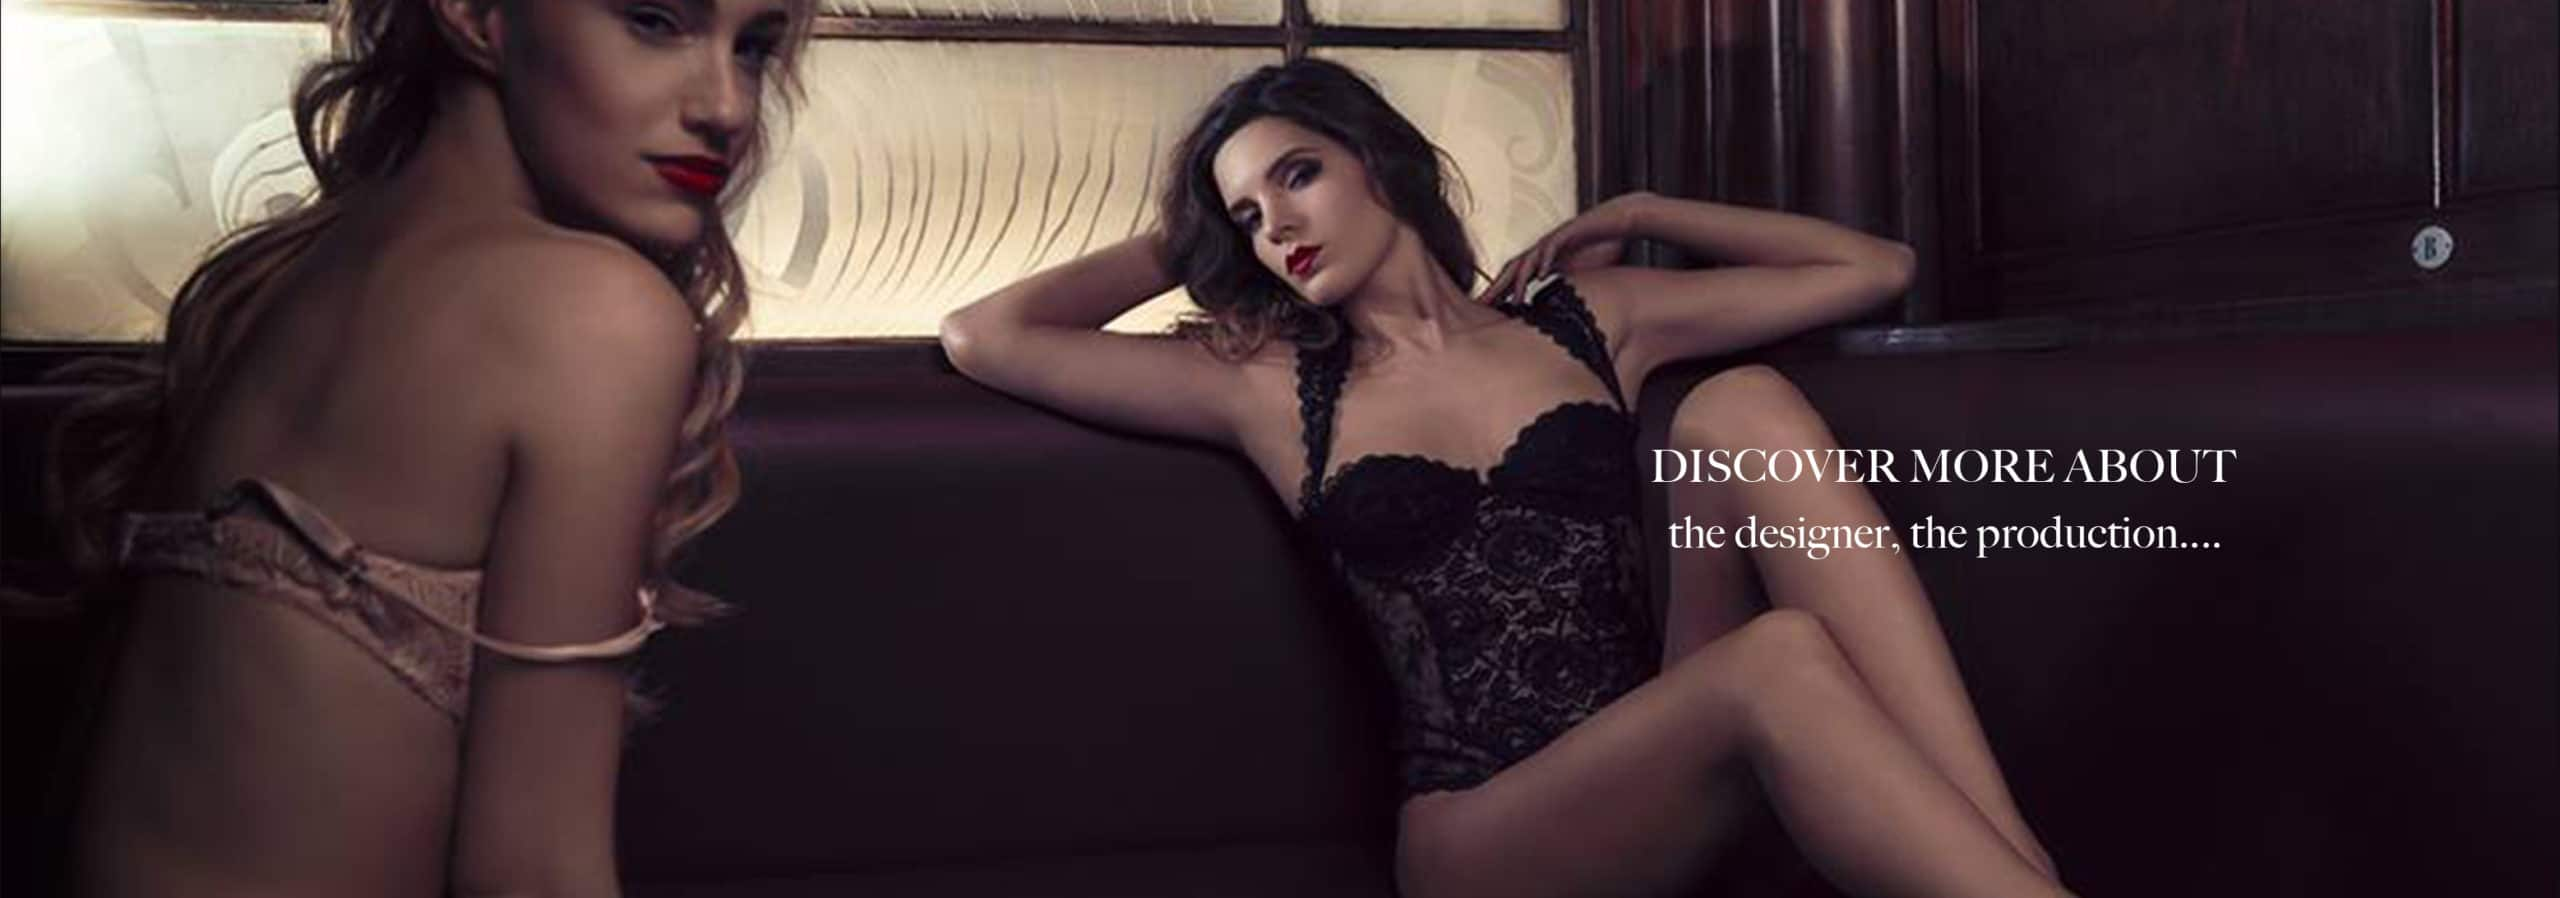 about the Lingerie designer